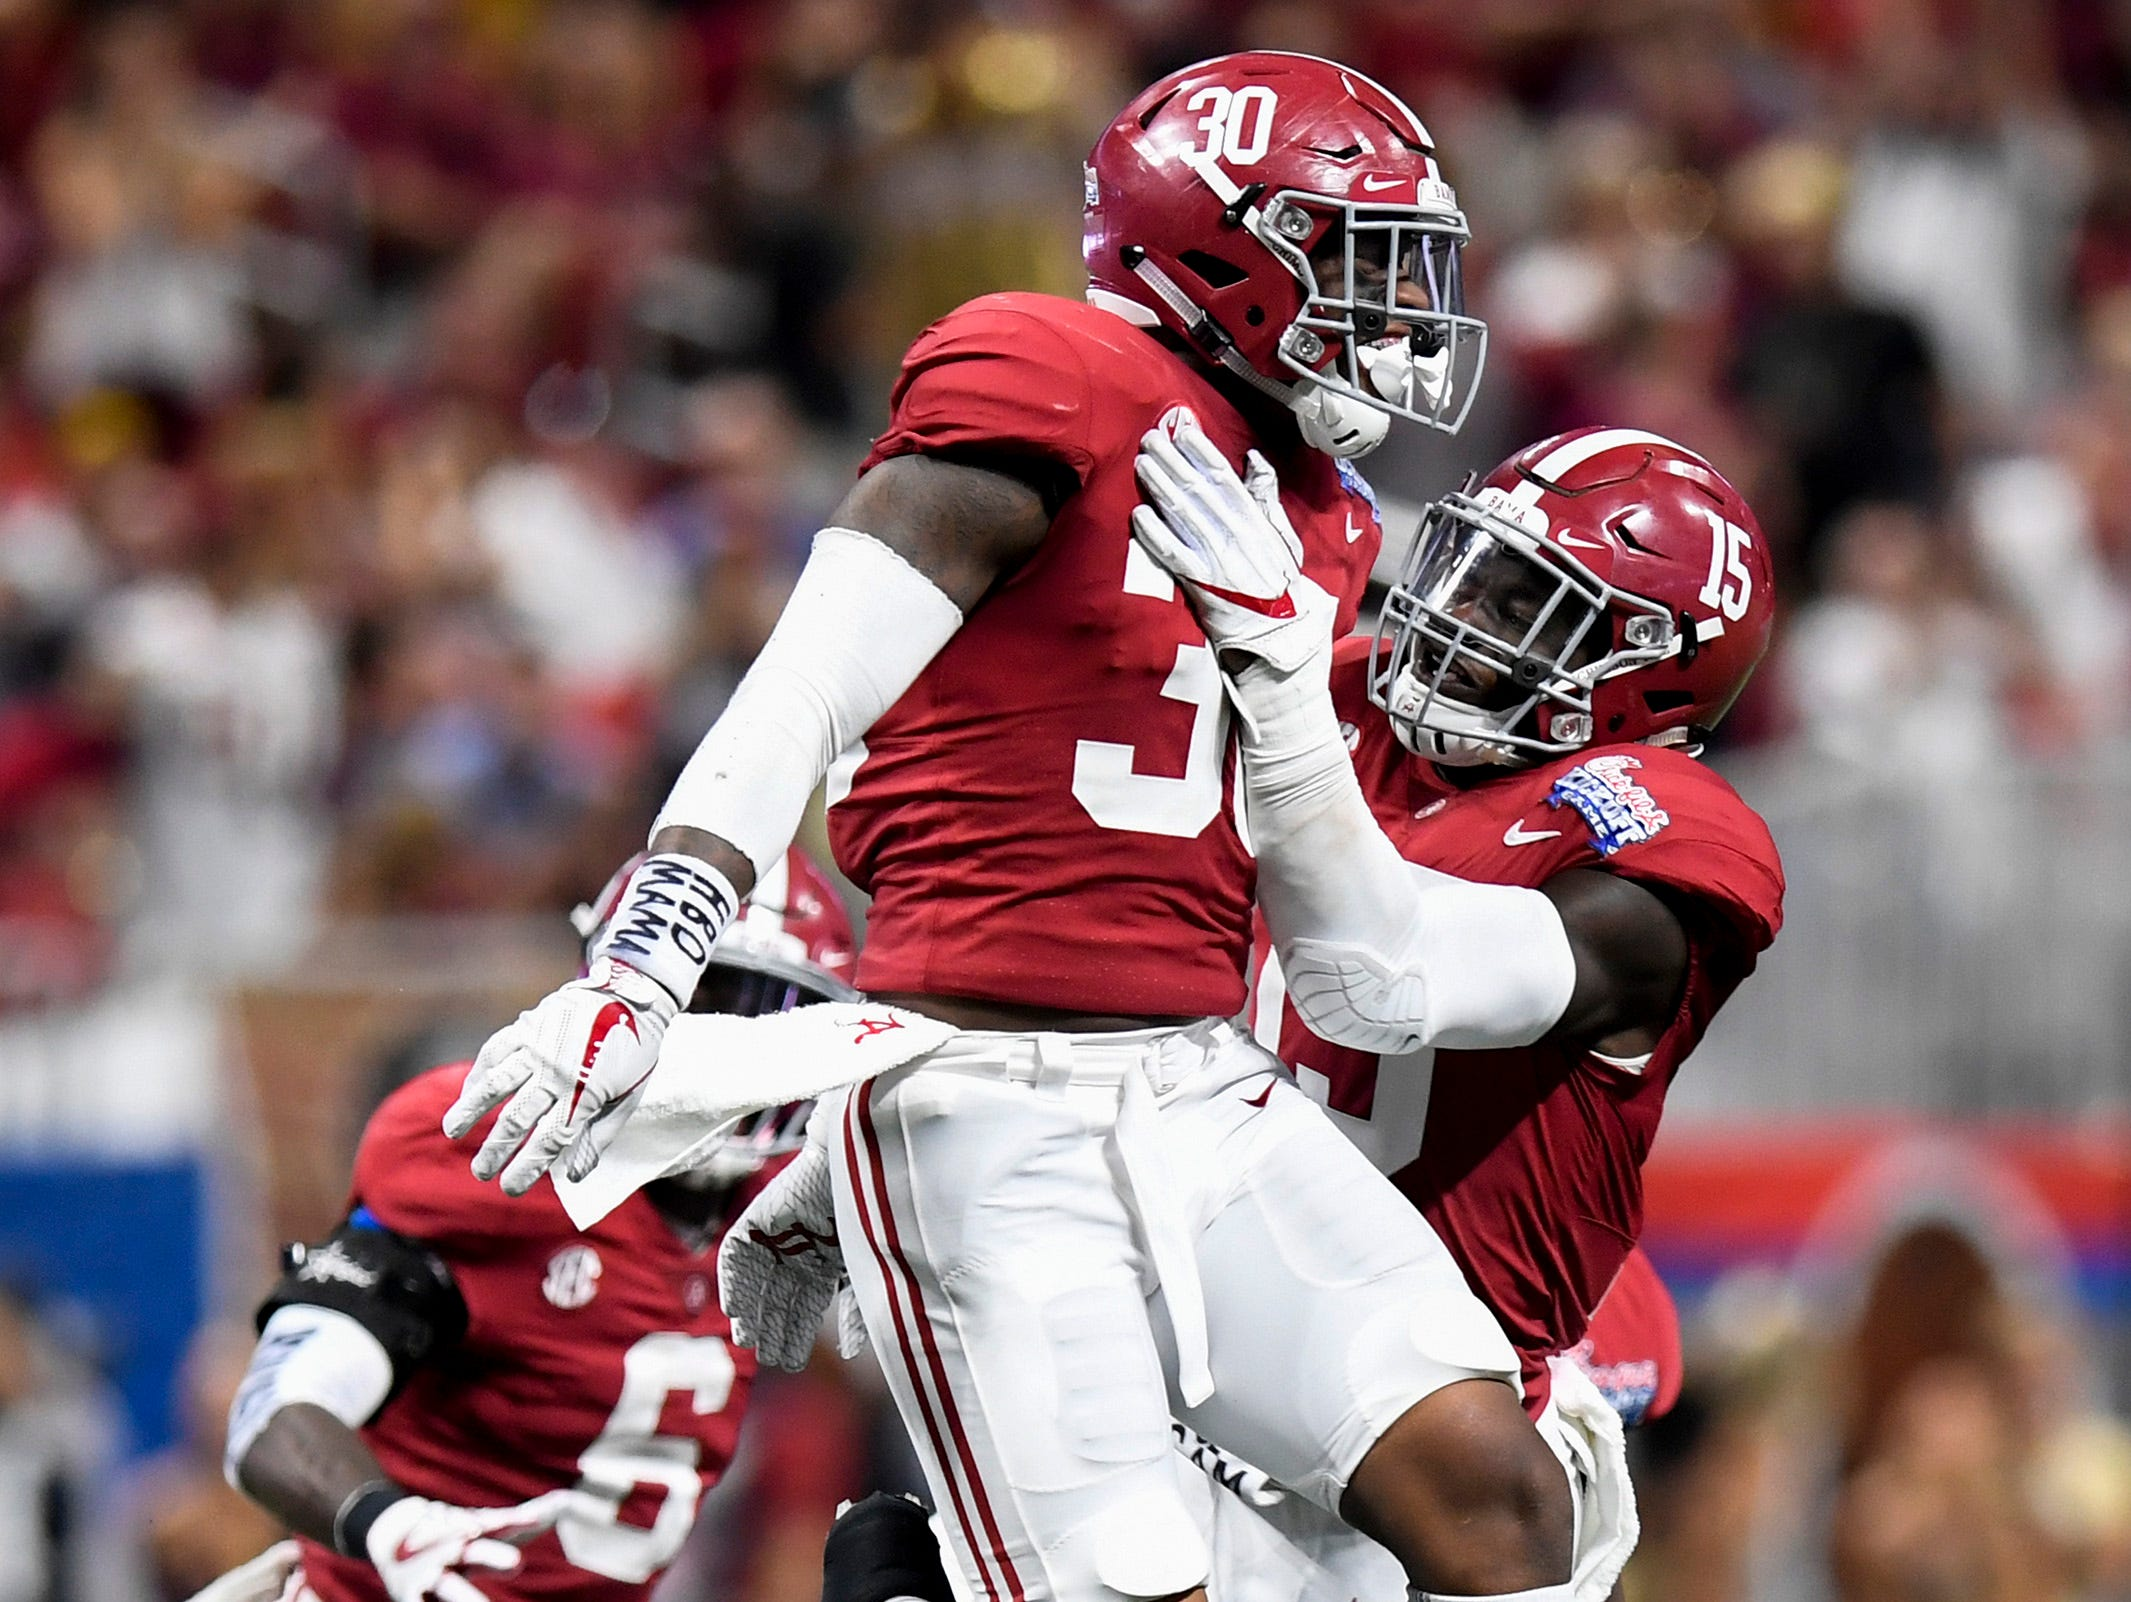 Alabama linebacker Mack Wilson (30) celebrates after intercepting a pass against Florida State in the Chick-fil-a Classic at the Mercedes - Benz Stadium in Atlanta, Ga., on Saturday September 2, 2017.